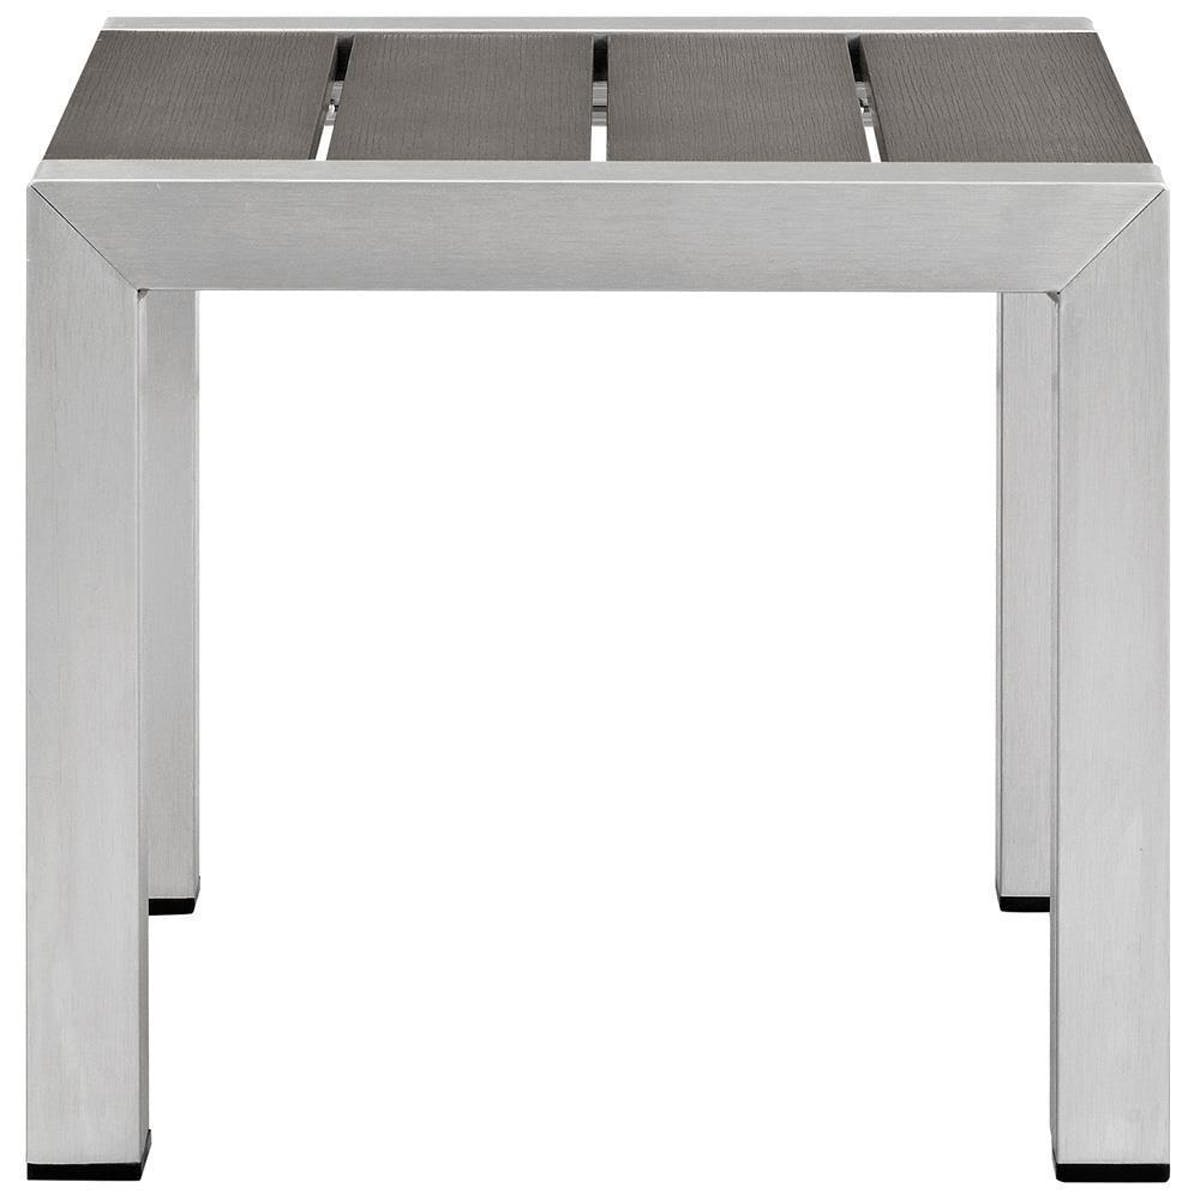 modway shore outdoor patio aluminum side table silver gray eei slv gry ashley furniture chair and half tiffany style bedside lamps ikea storage drawers pier one ott maple bunnings